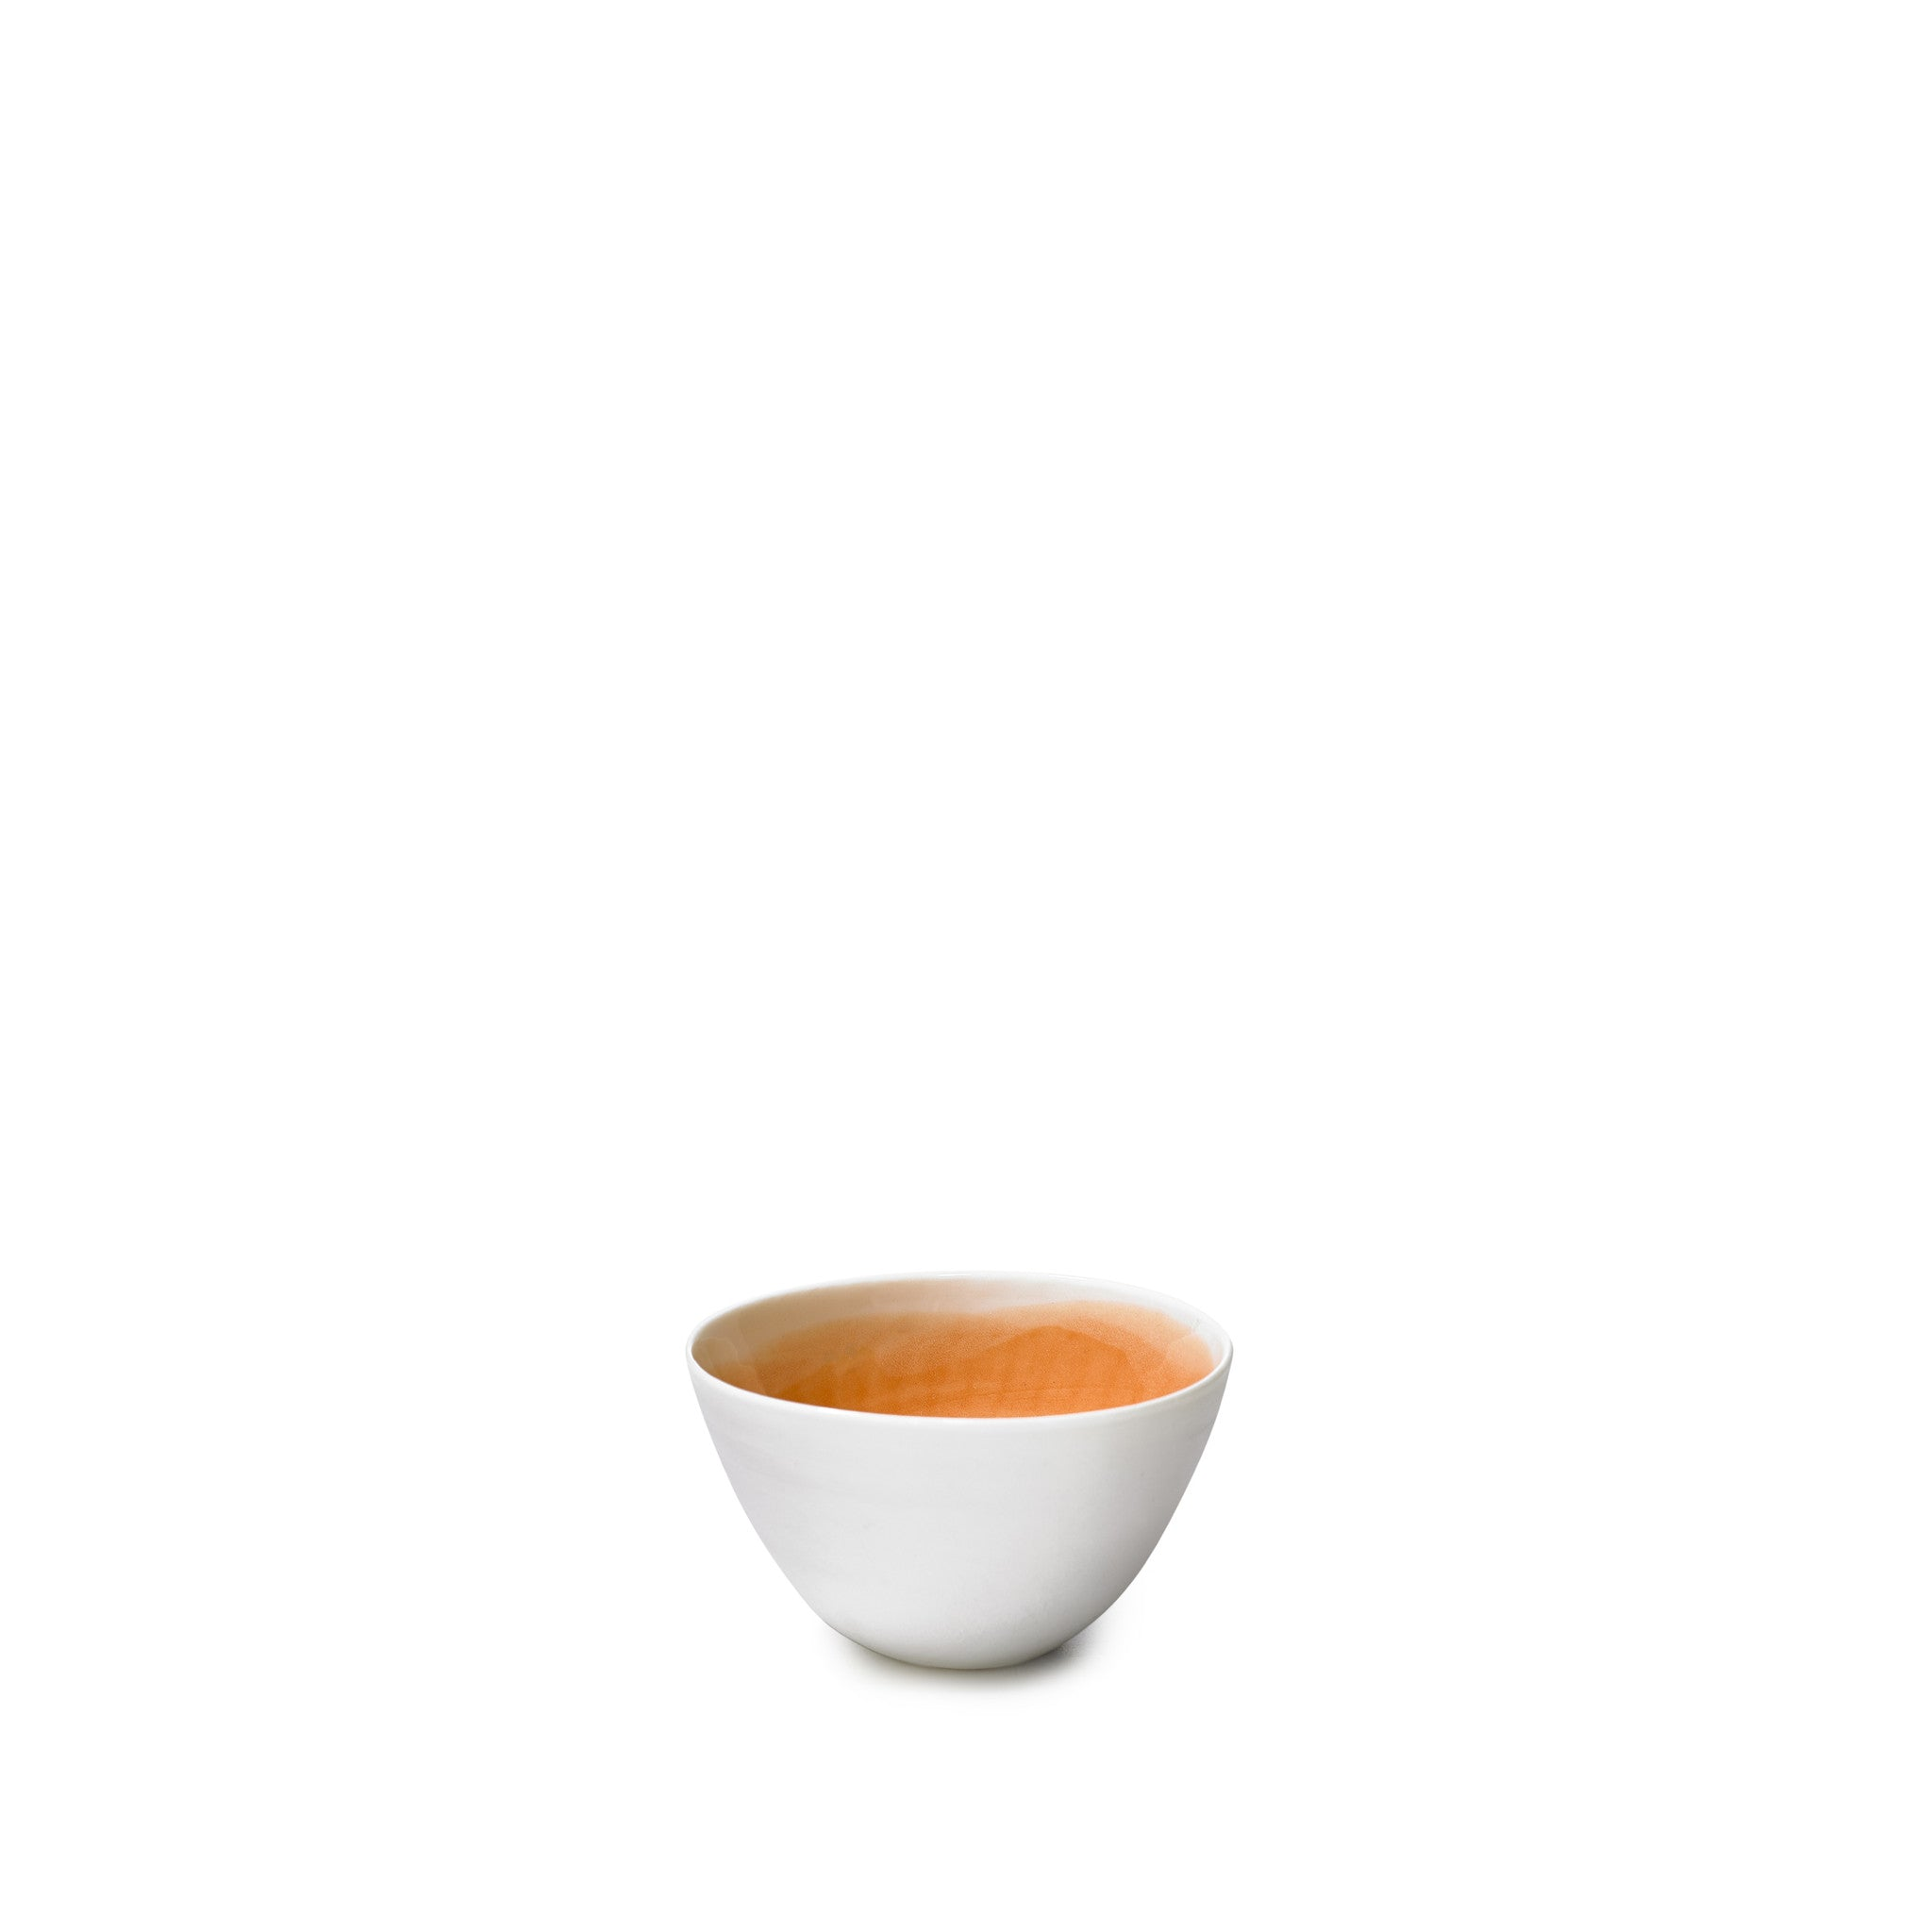 Small Orange Porcelain Bowl with White Edge, 8cm